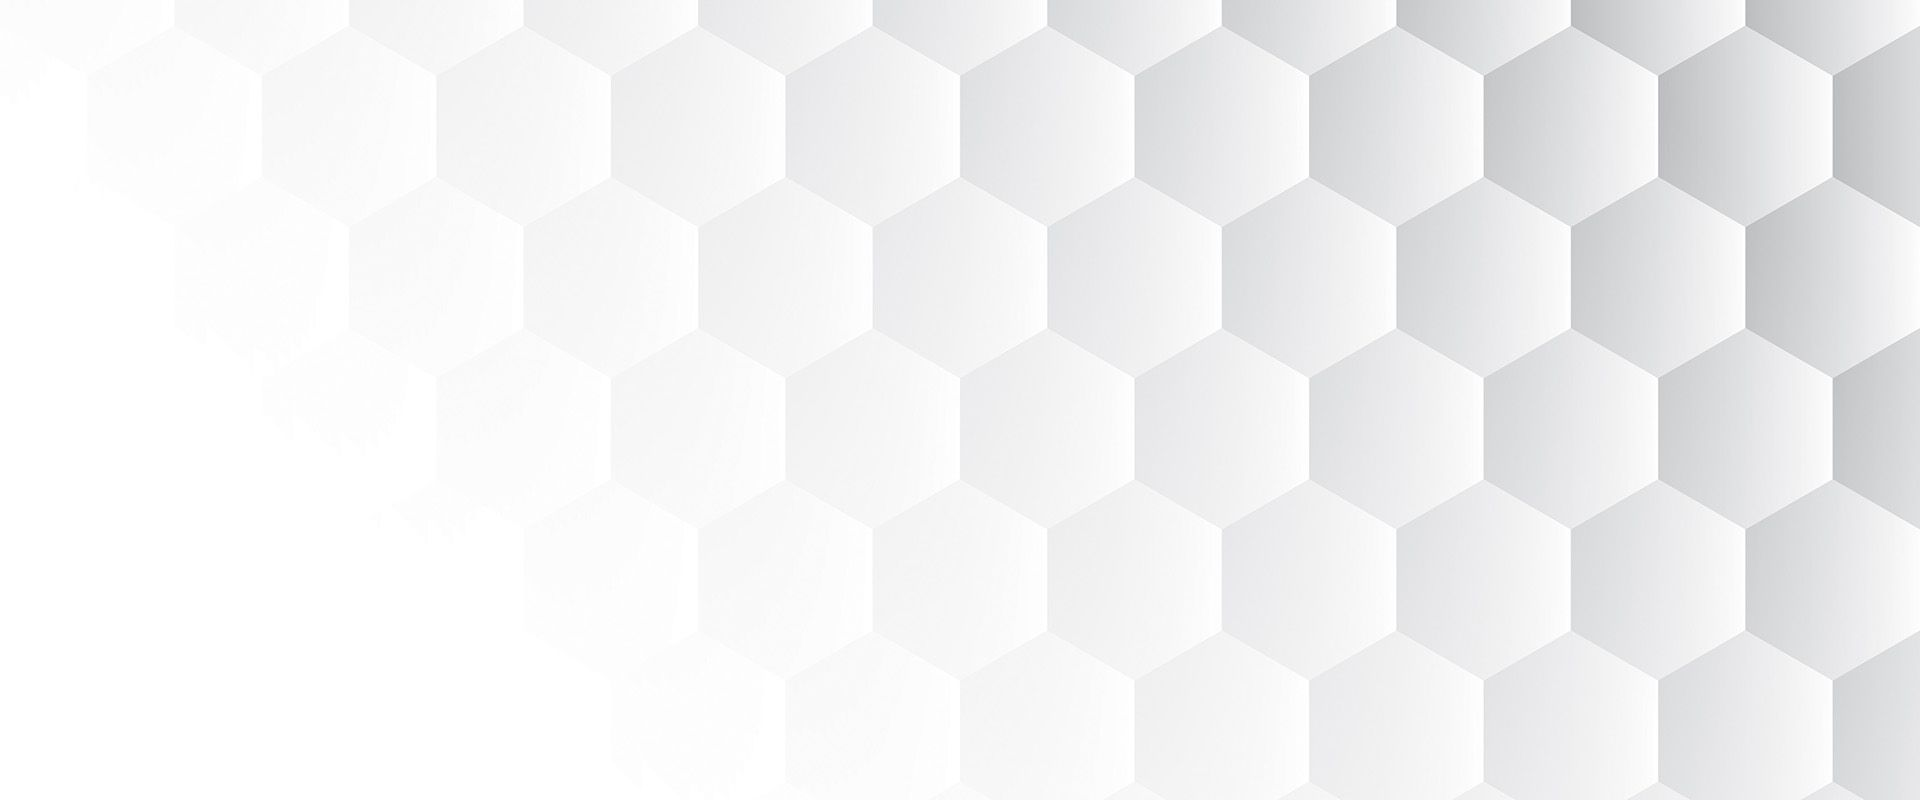 Simple White Honeycomb Pattern Background Fundo Padrao Textura